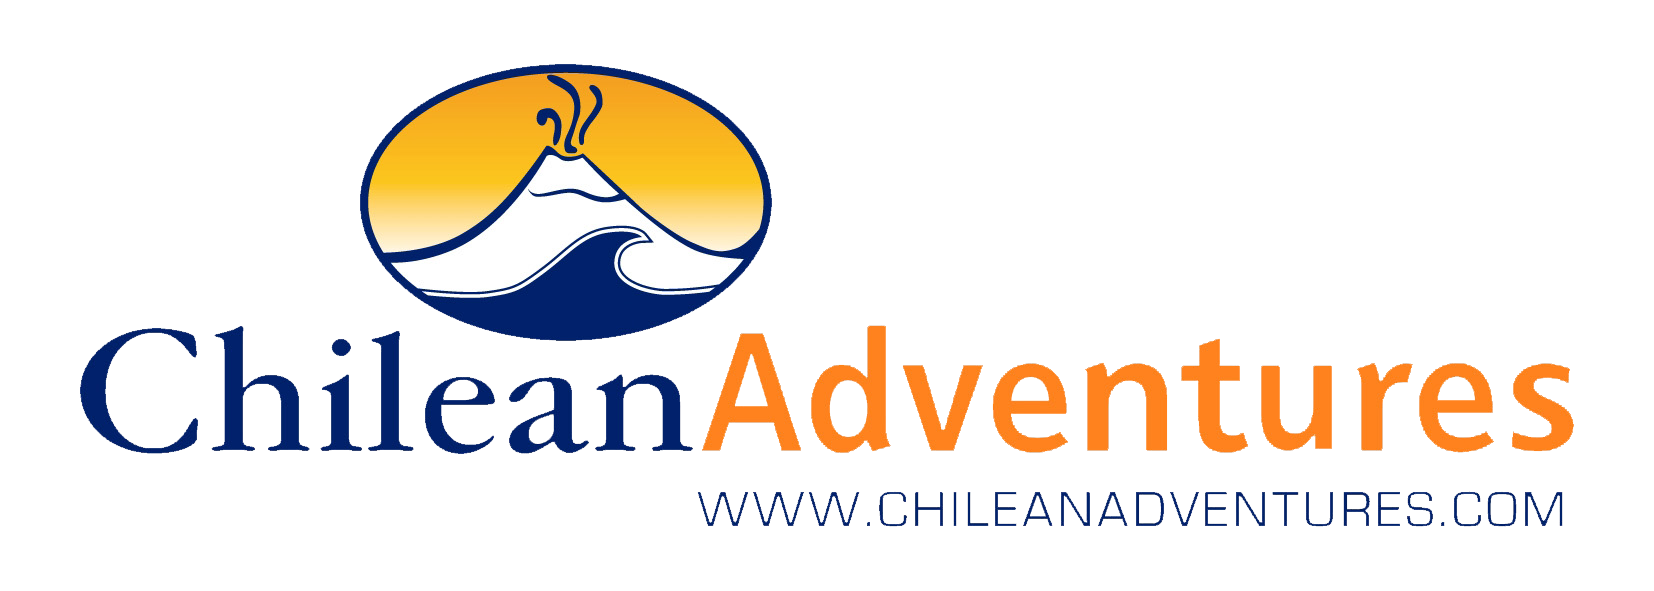 Chilean Adventures logo